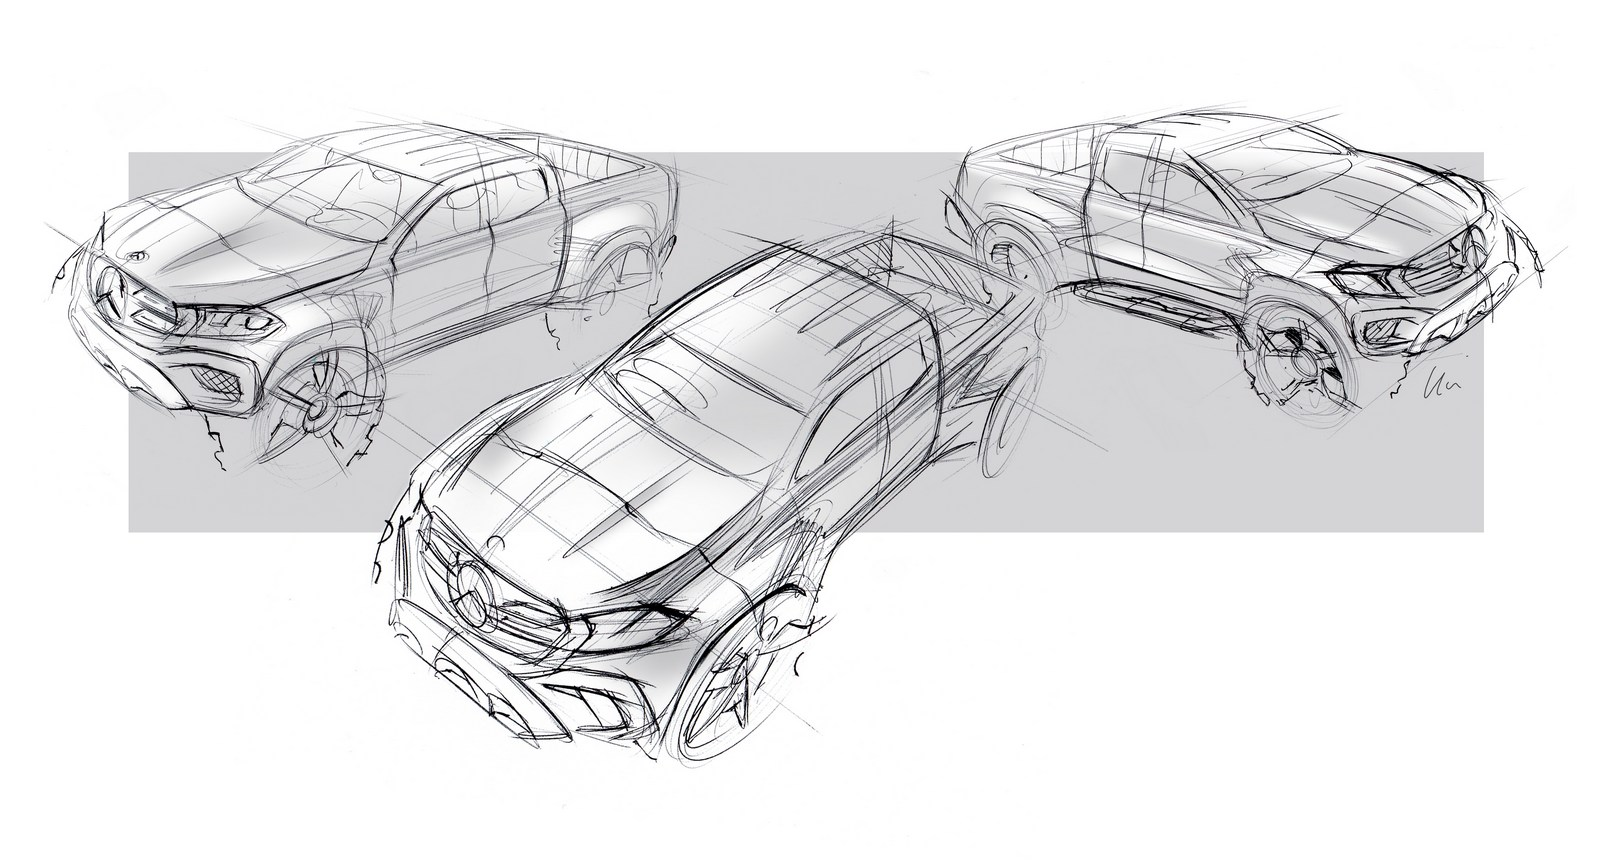 Mercedes-Benz X-Klasse – Designskizze // Mercedes-Benz X-Class – Design sketch